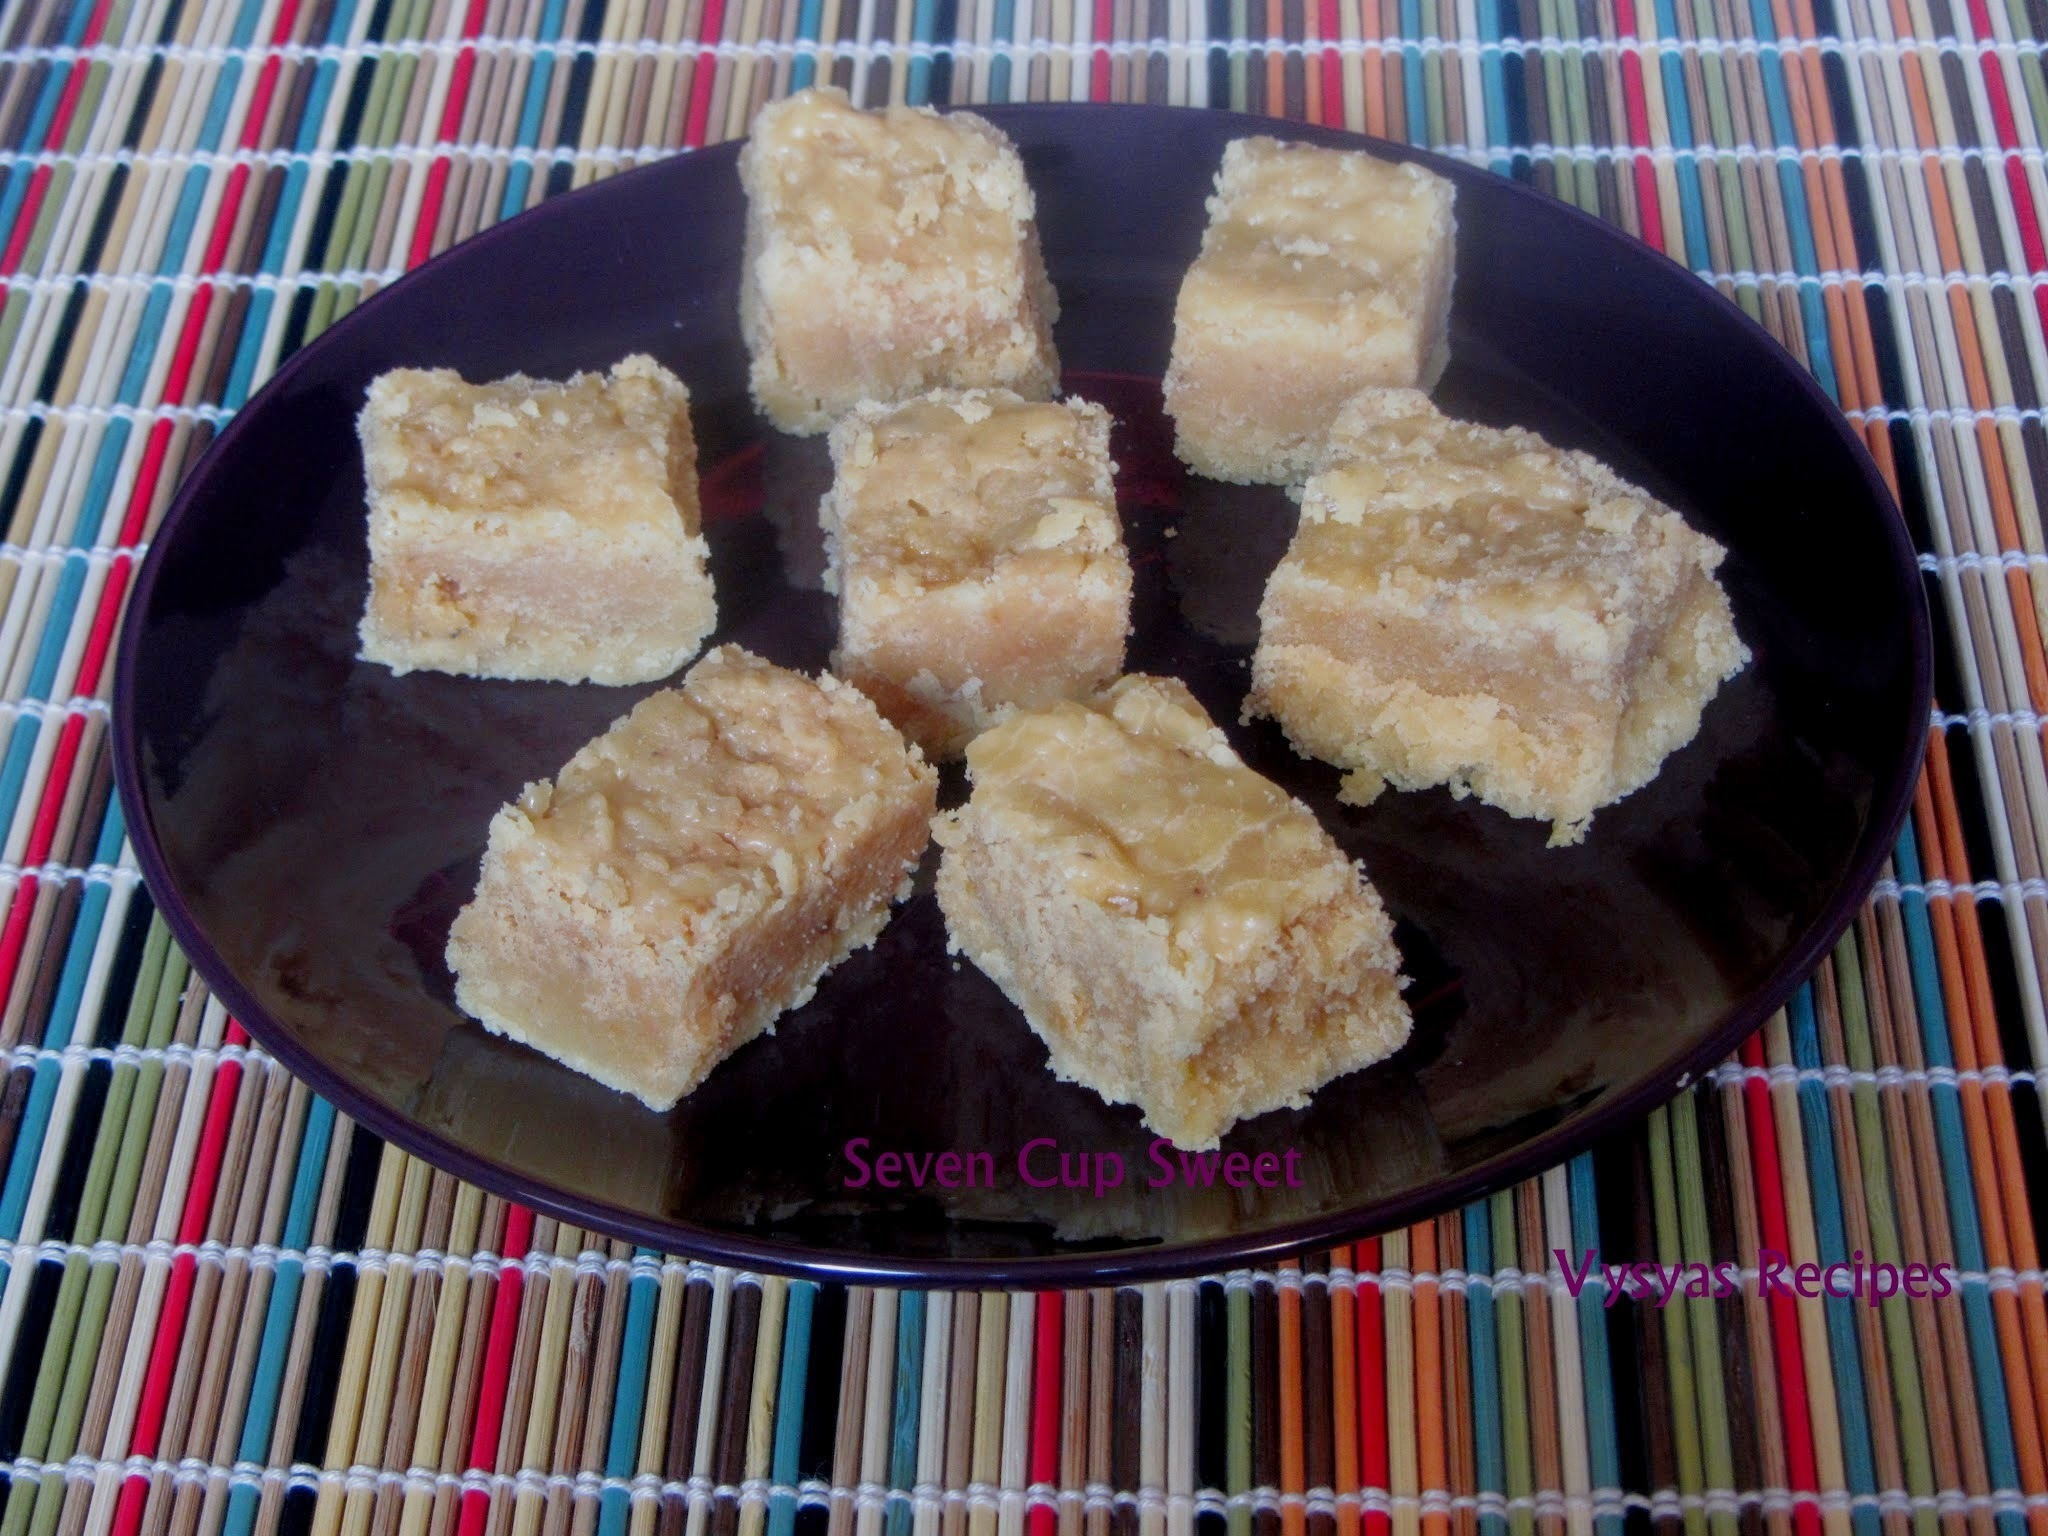 Seven Cup Burfi - 7 cup Sweet Recipe - Easy Diwali Sweet